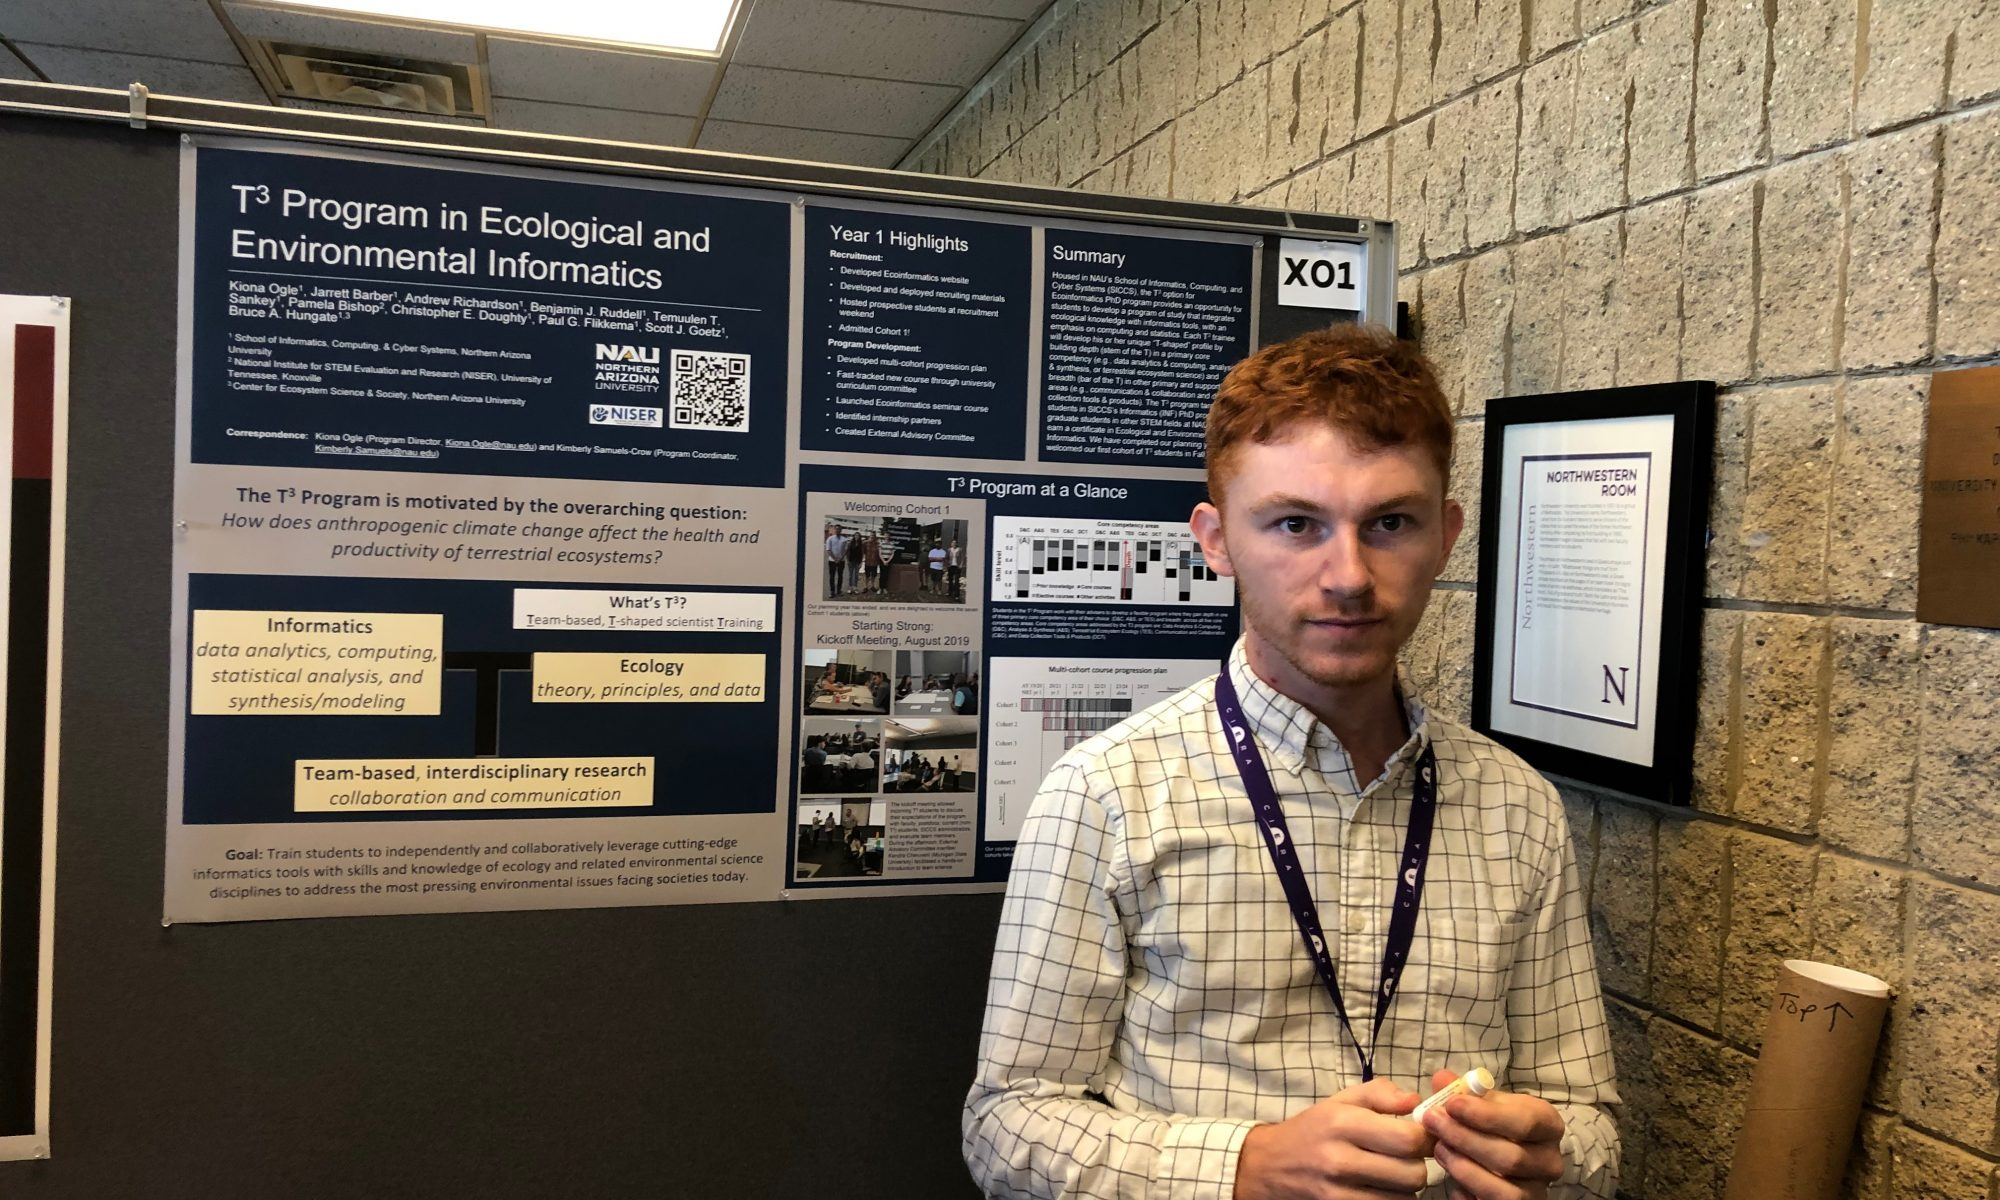 Male grad student in front of poster